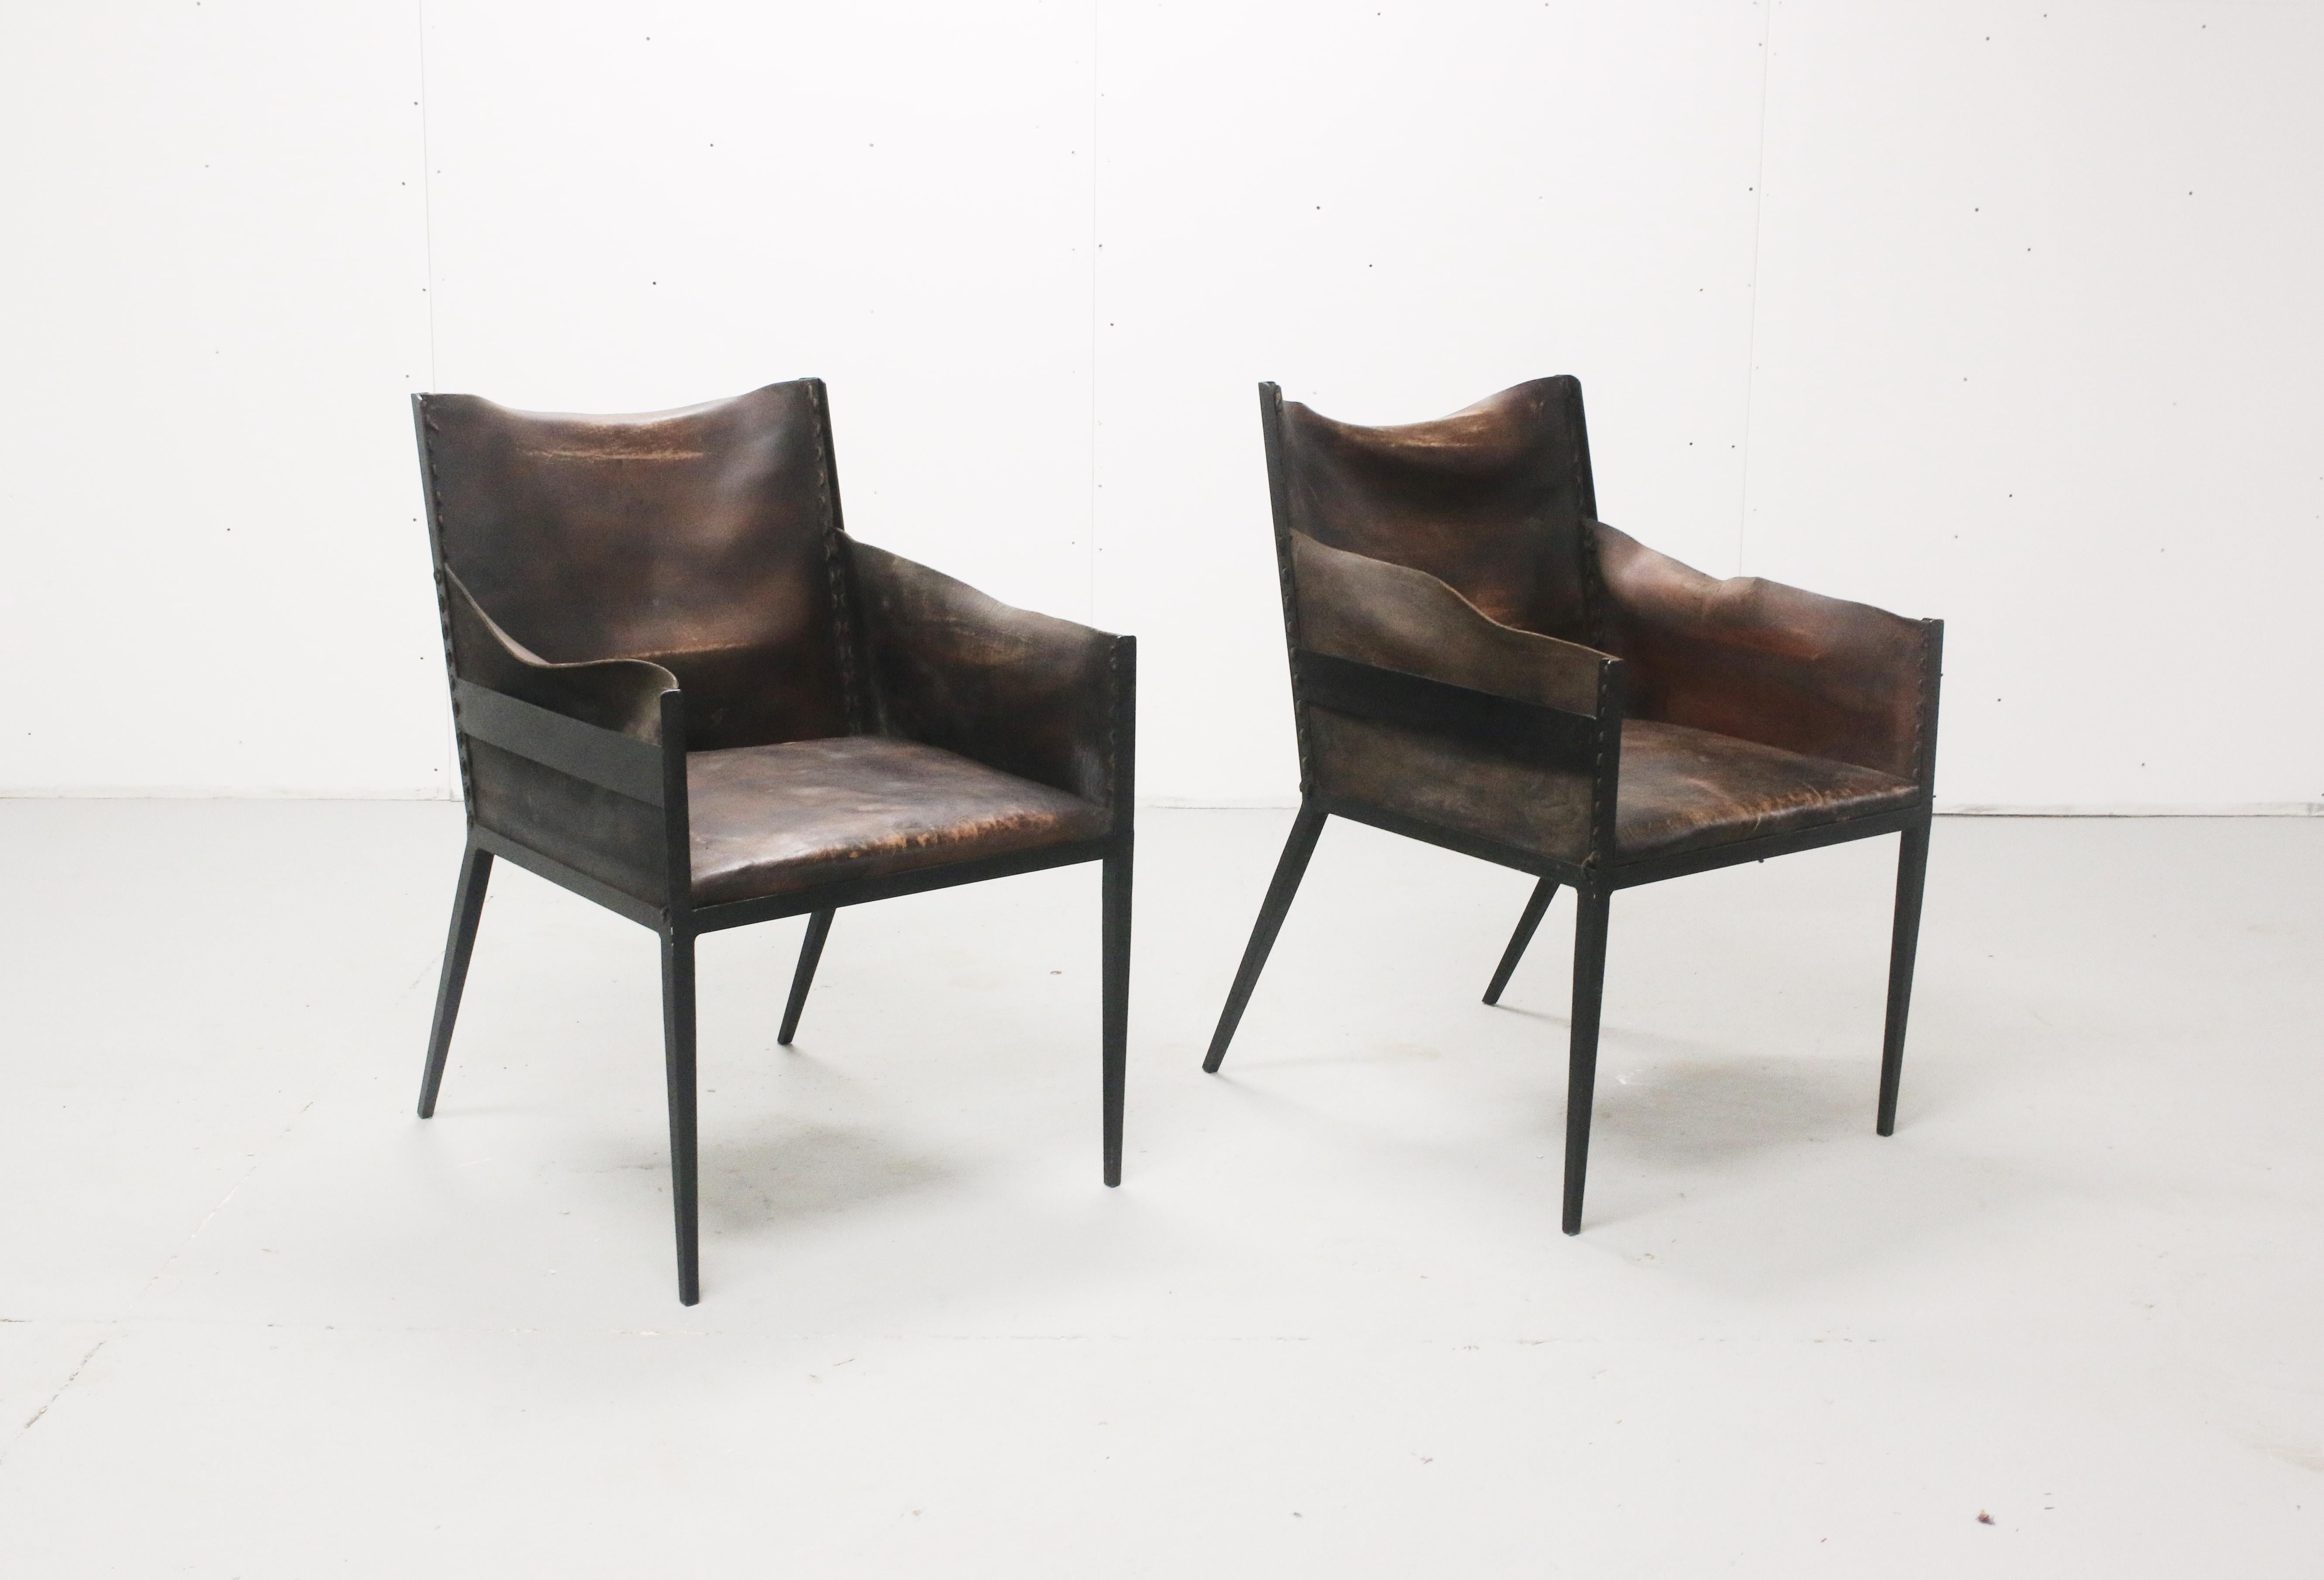 Iron And Leather Chairs, In The Manner Of Jean Michel Frank, France.